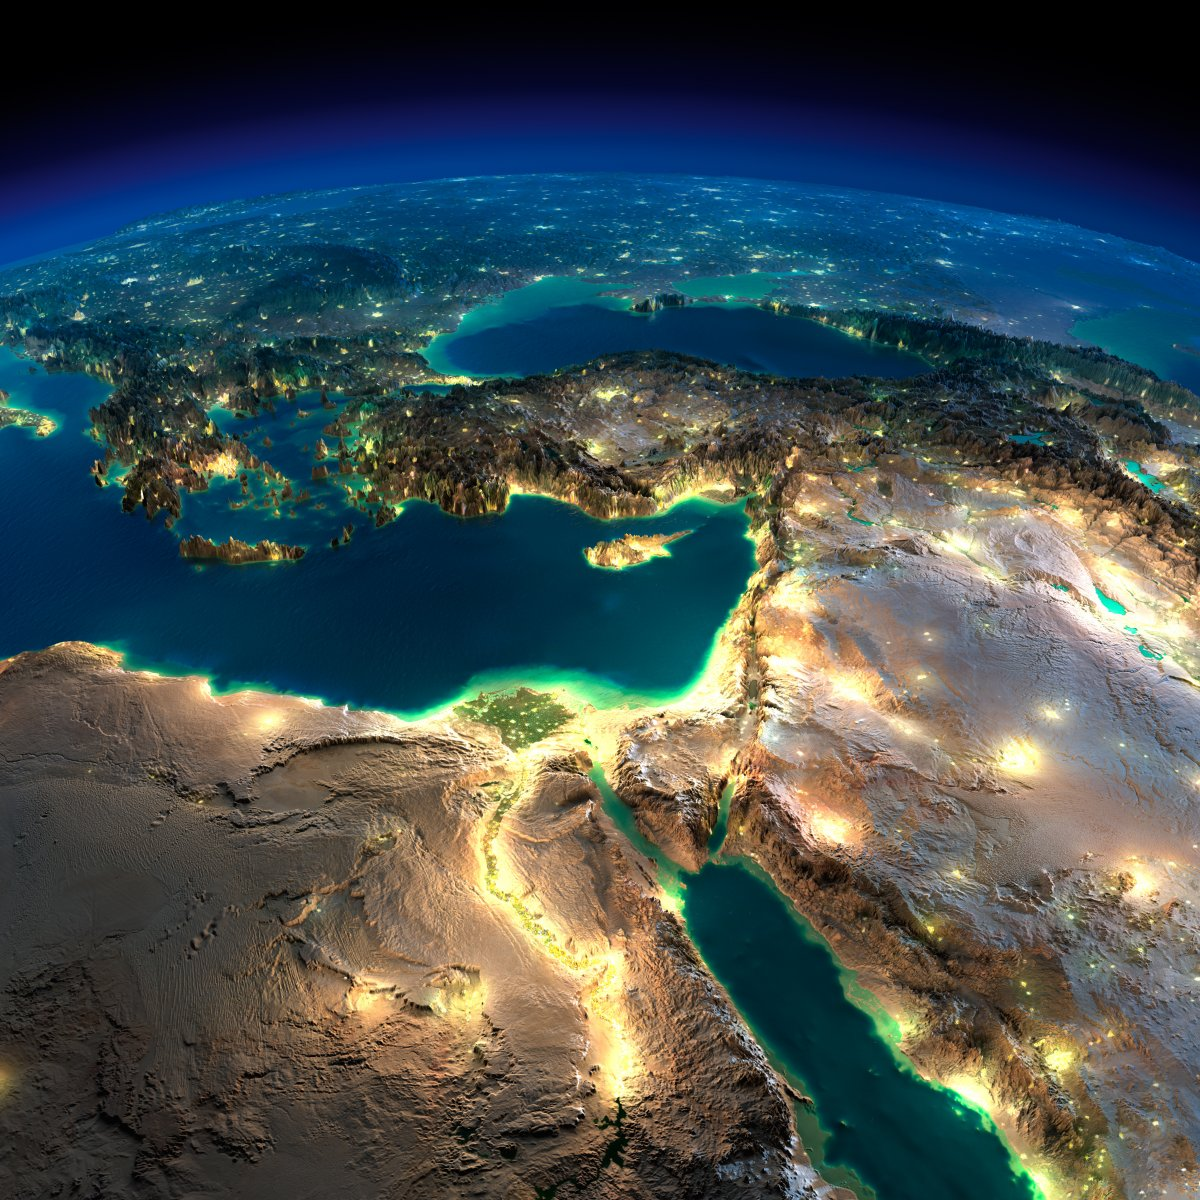 earth night photos middleeast by anton balazh